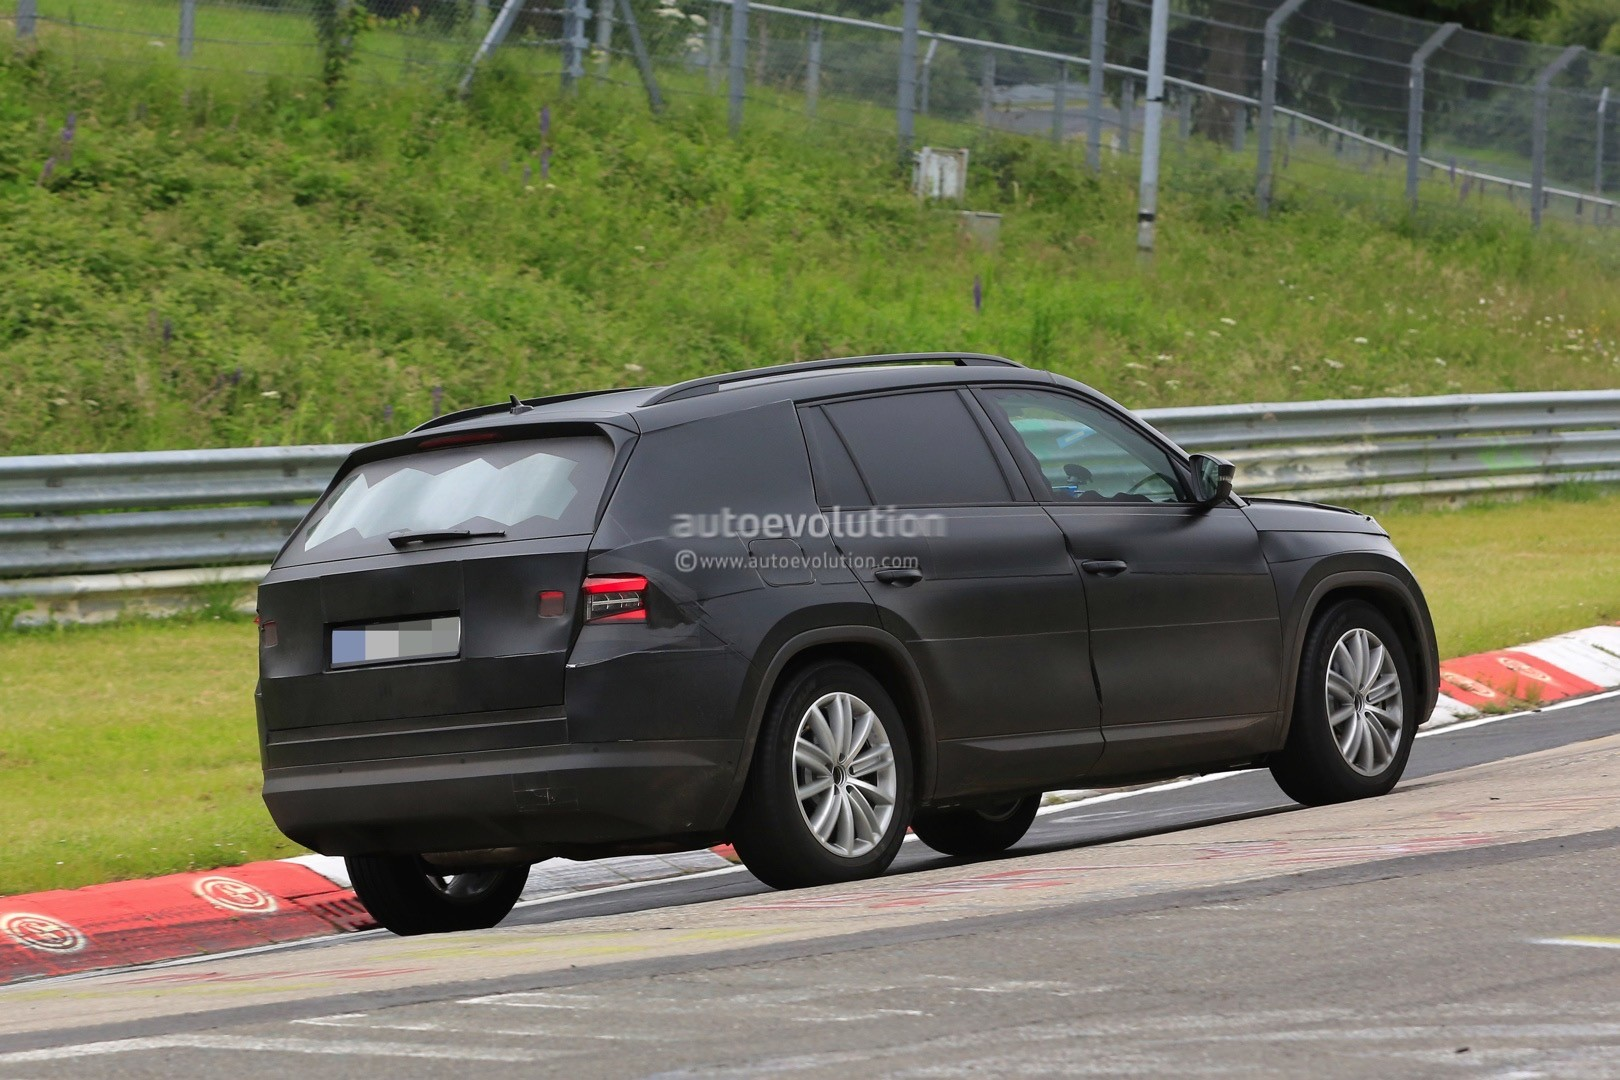 2017 skoda kodiaq spied looks out of place lapping the. Black Bedroom Furniture Sets. Home Design Ideas